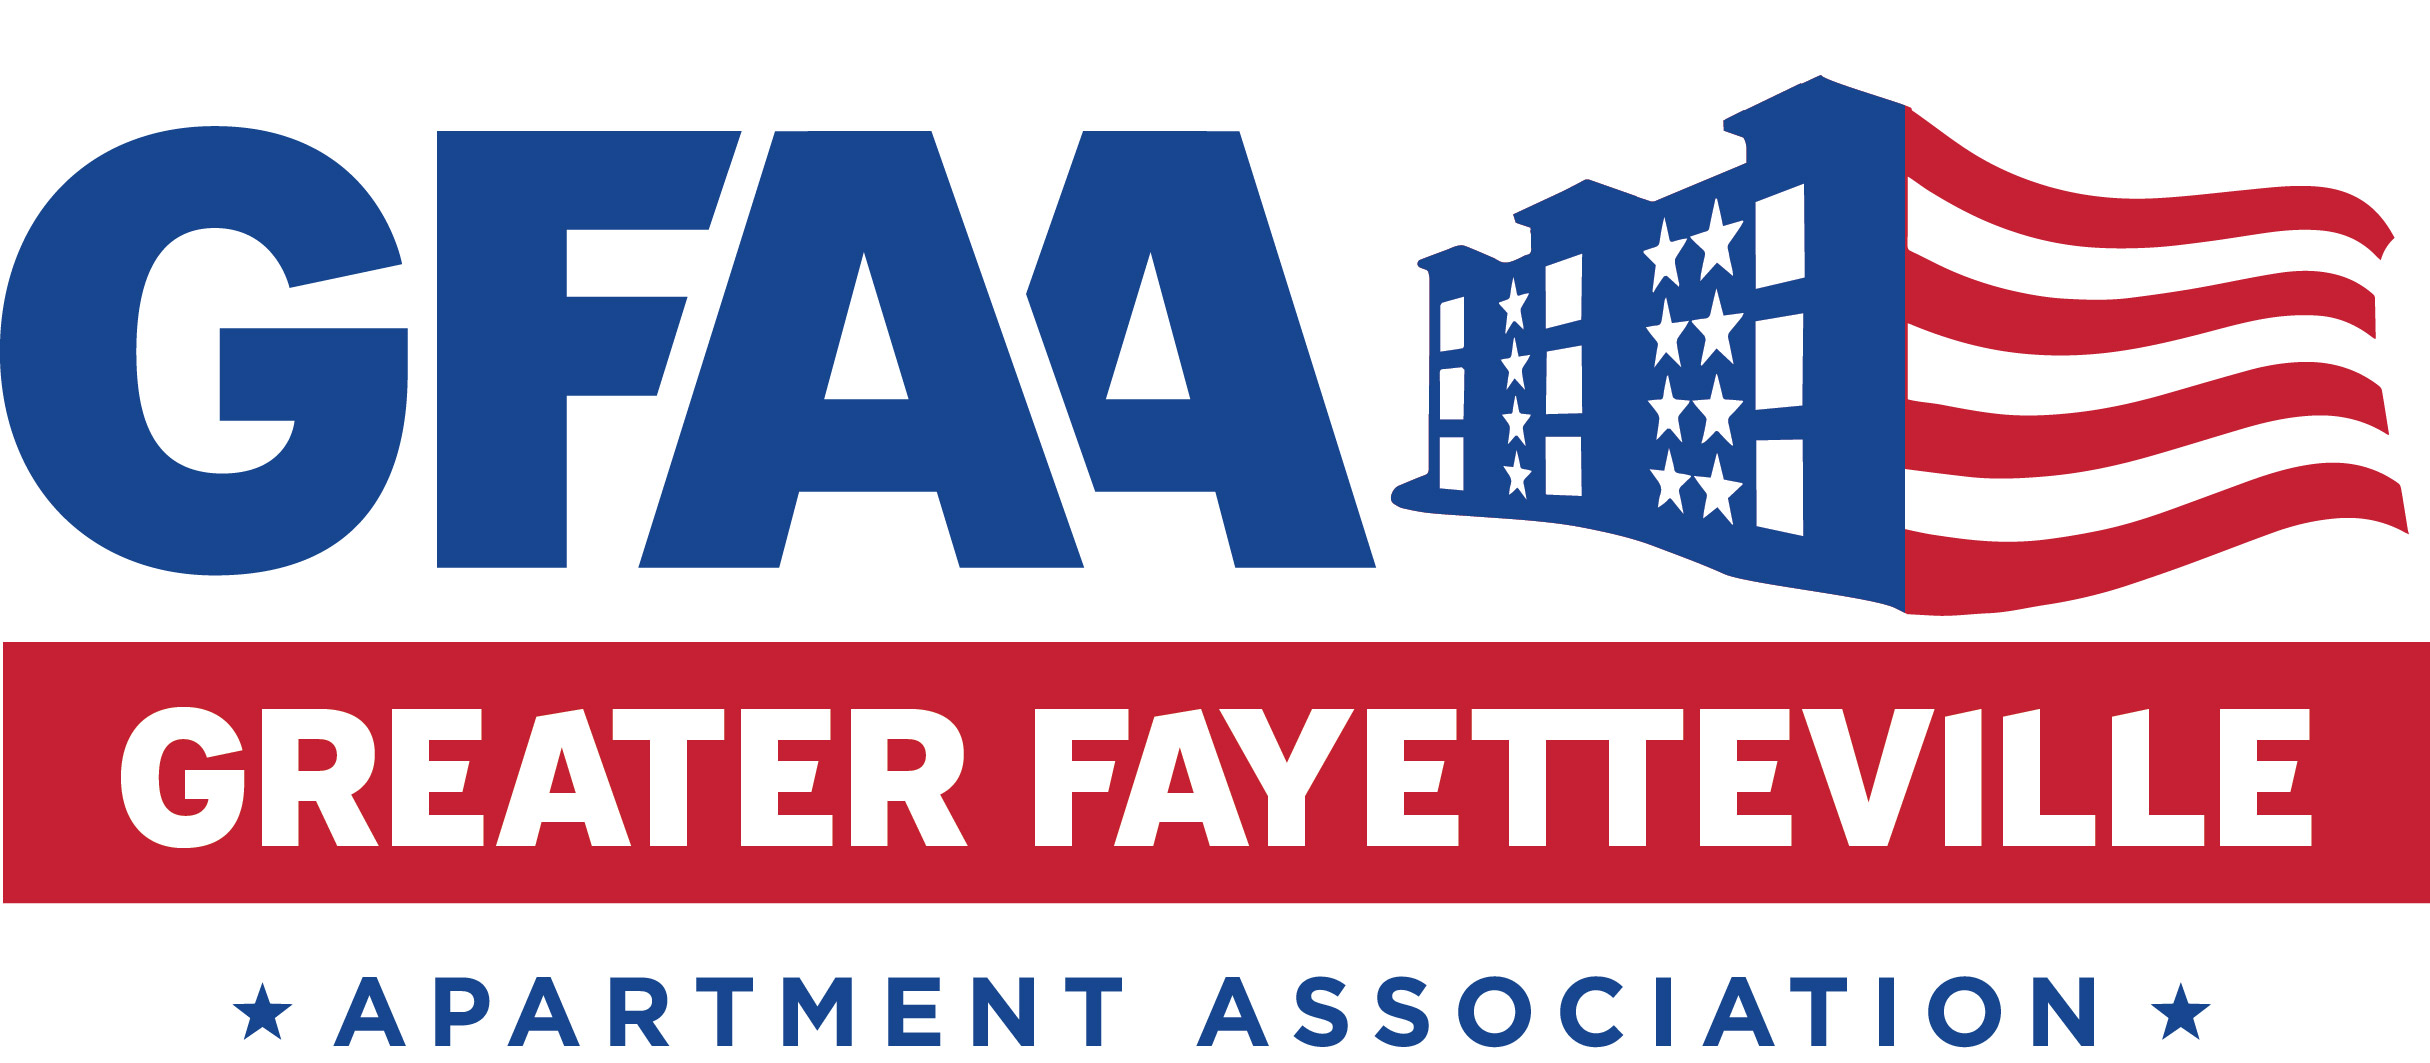 Greater Fayetteville Apartment Association Logo